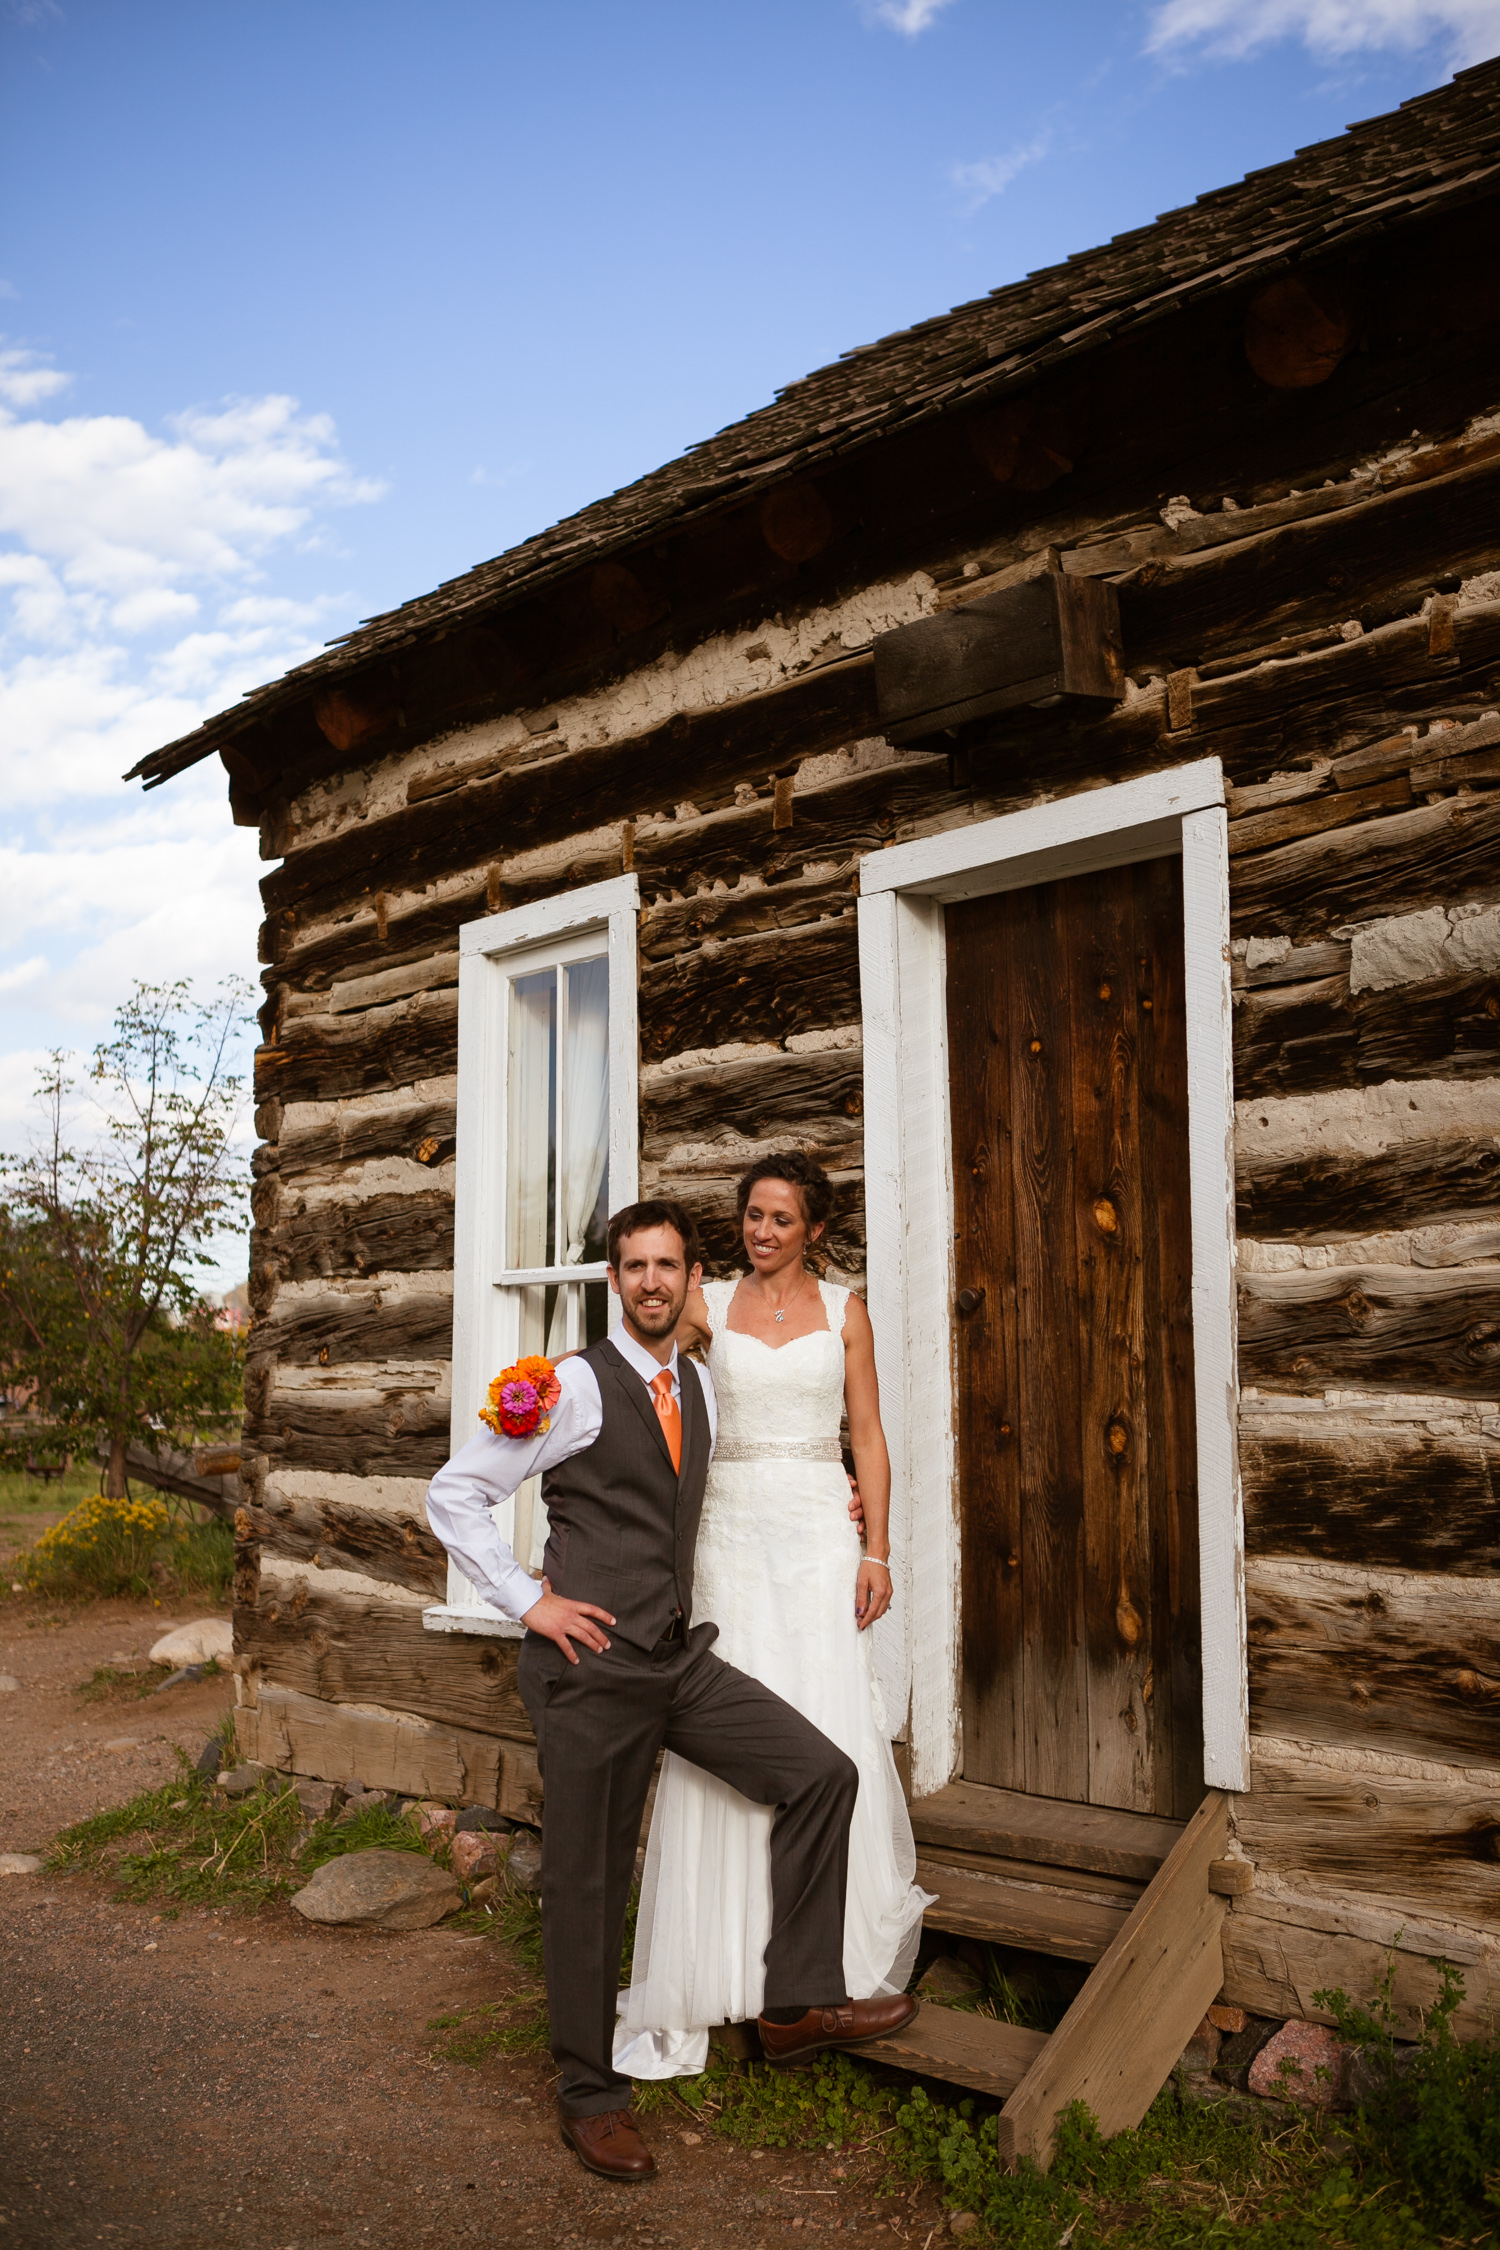 Coal_Creek_Canyon_Wedding_074.JPG